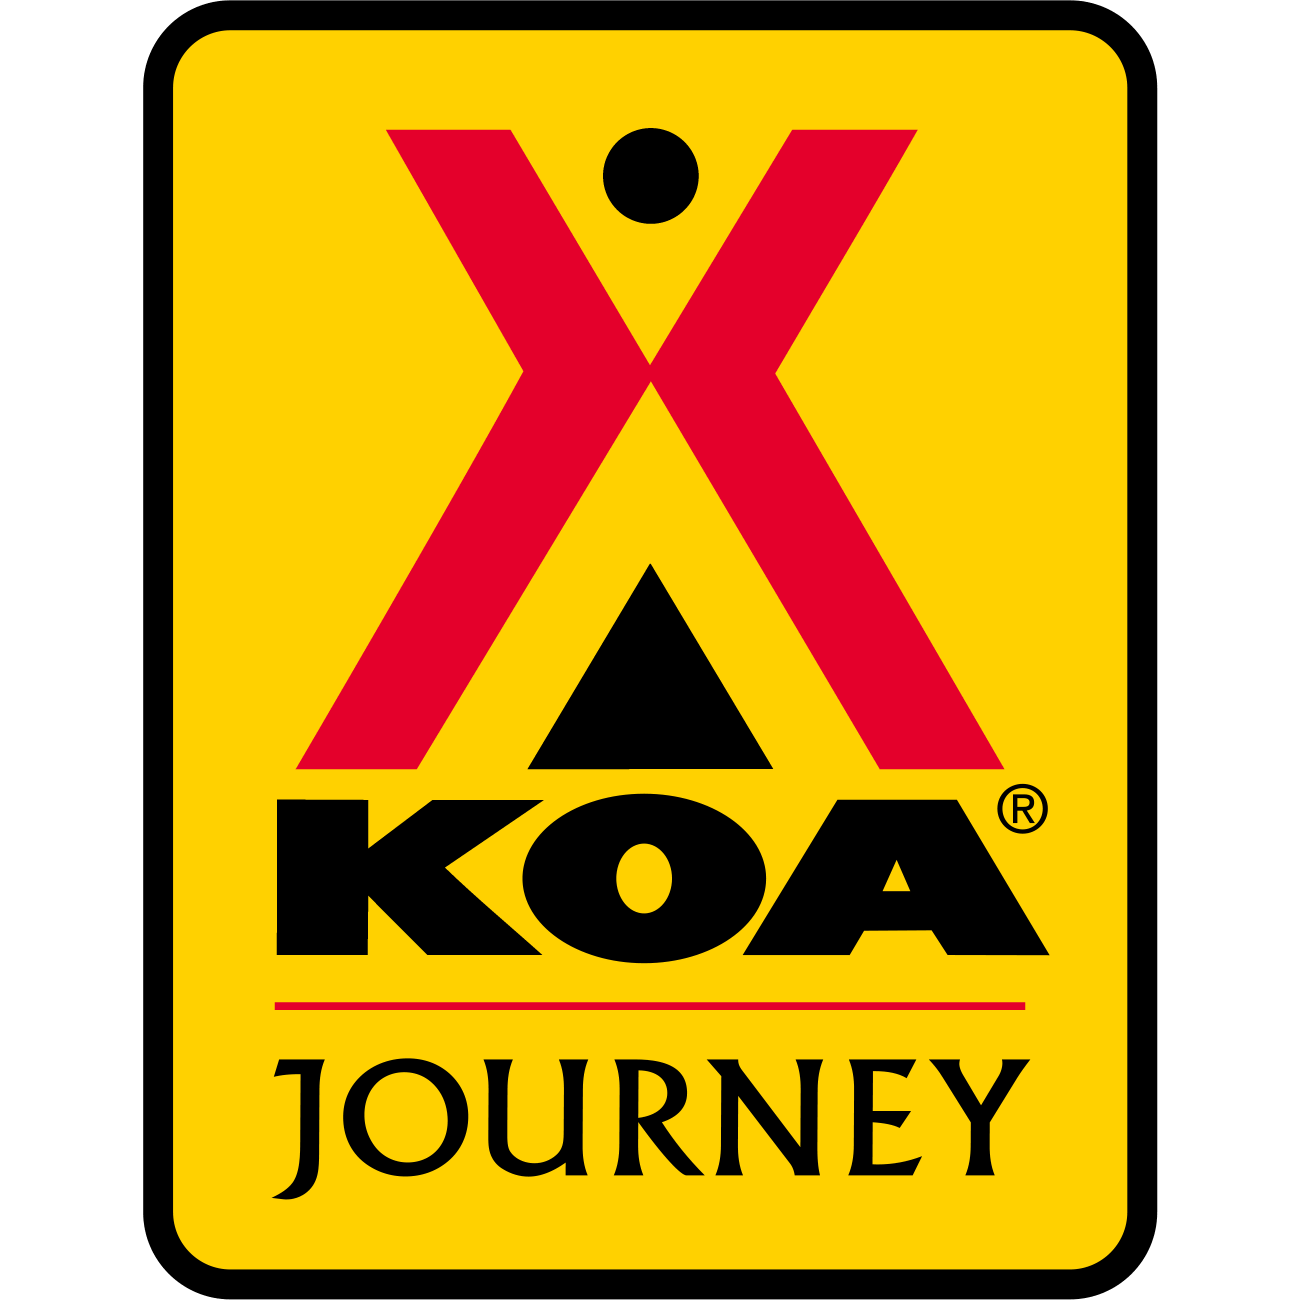 Ozark / Fort Rucker KOA Journey